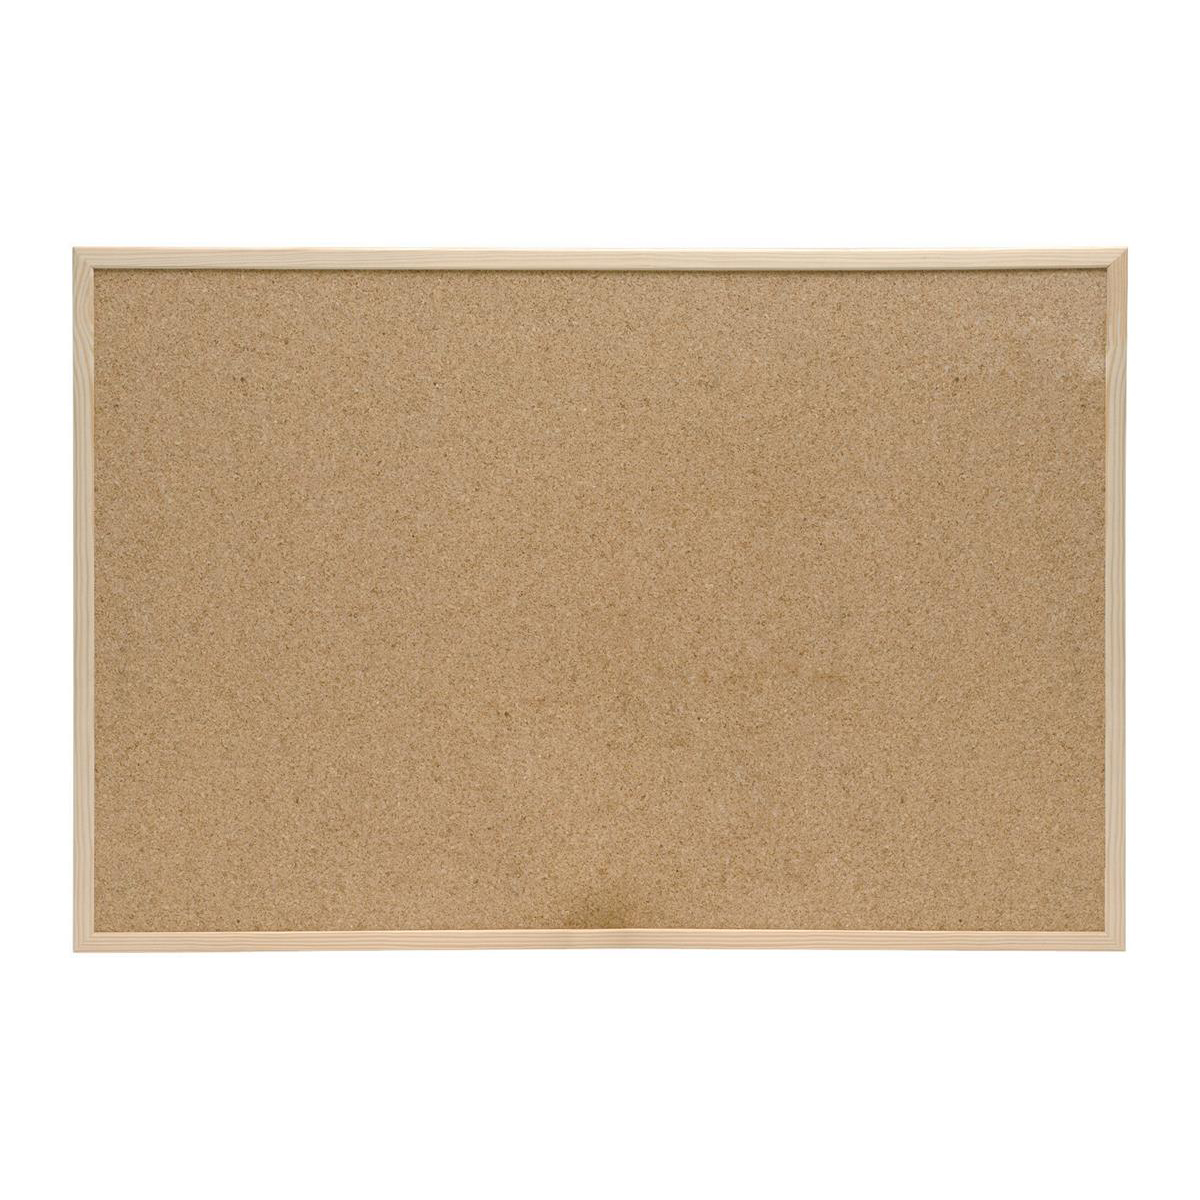 Cork 5 Star Office Noticeboard Cork with Pine Frame W1200xH900mm